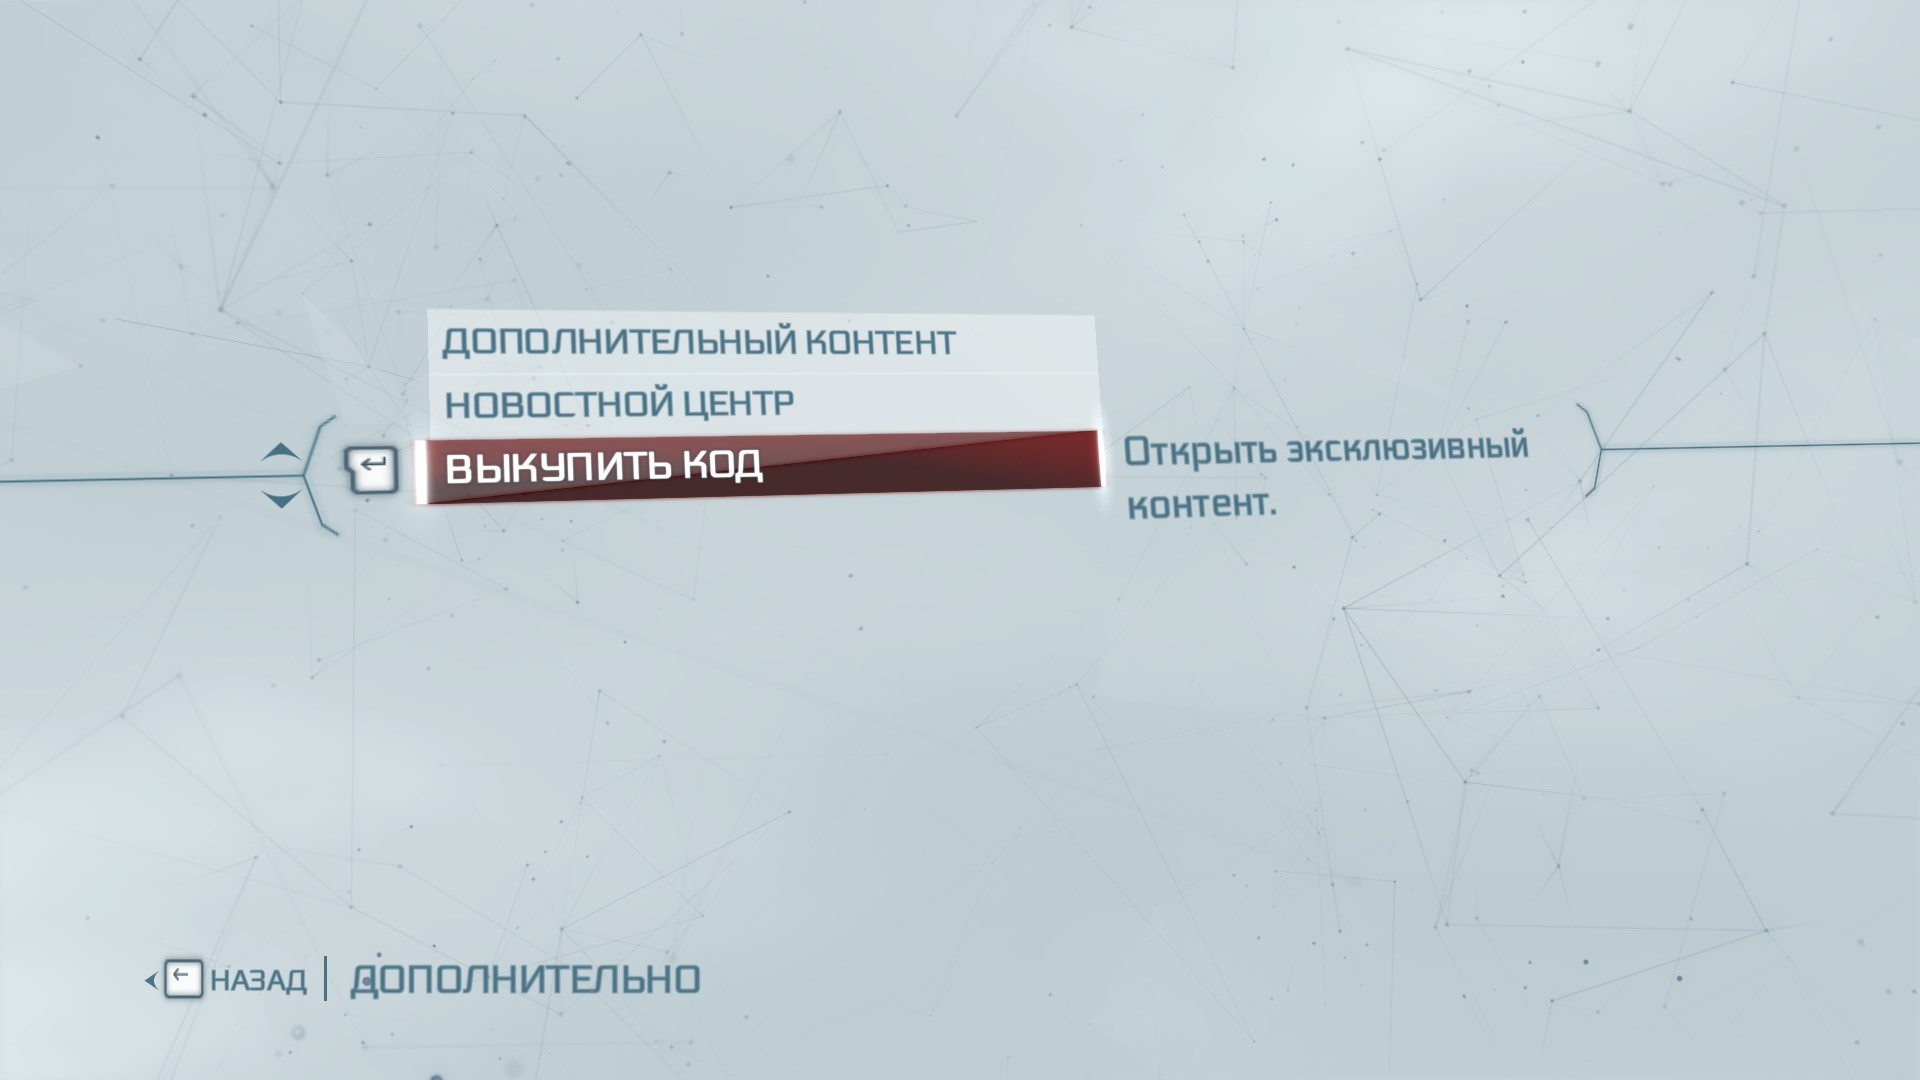 Assassin's Creed 3 - DLC Набор Капитан Аквилы